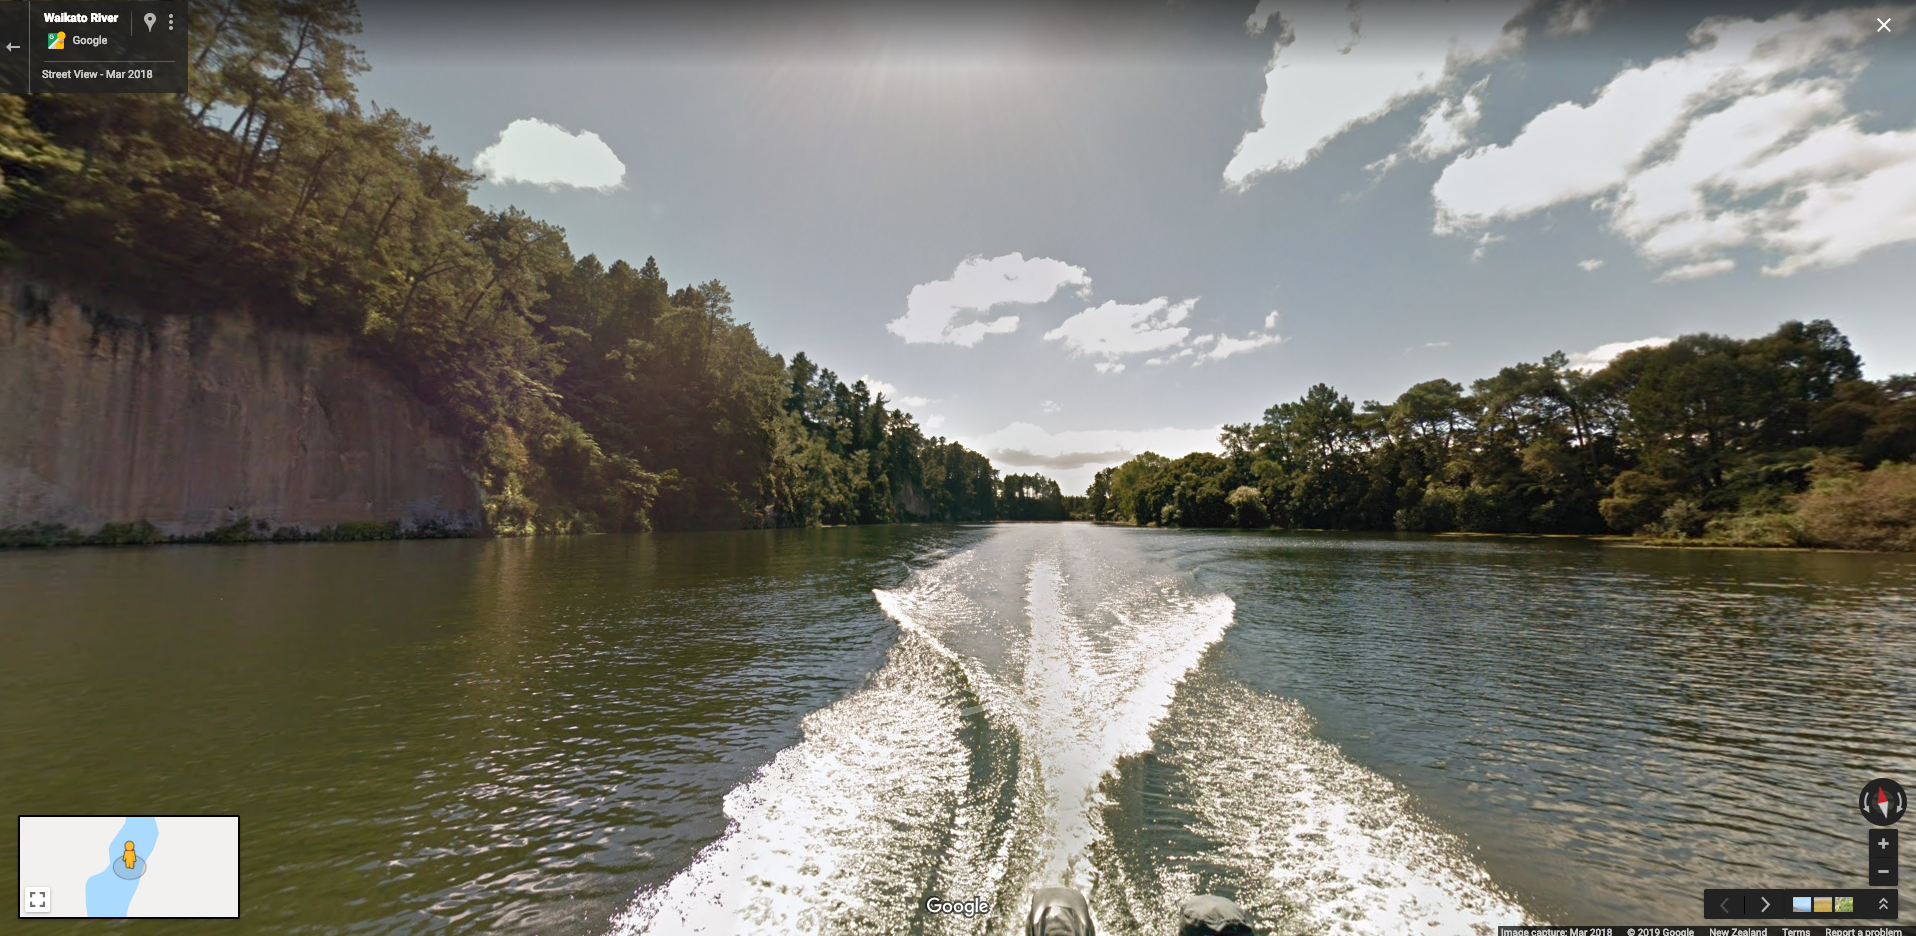 Waikato River added to Google Street View | Te Ao Māori News